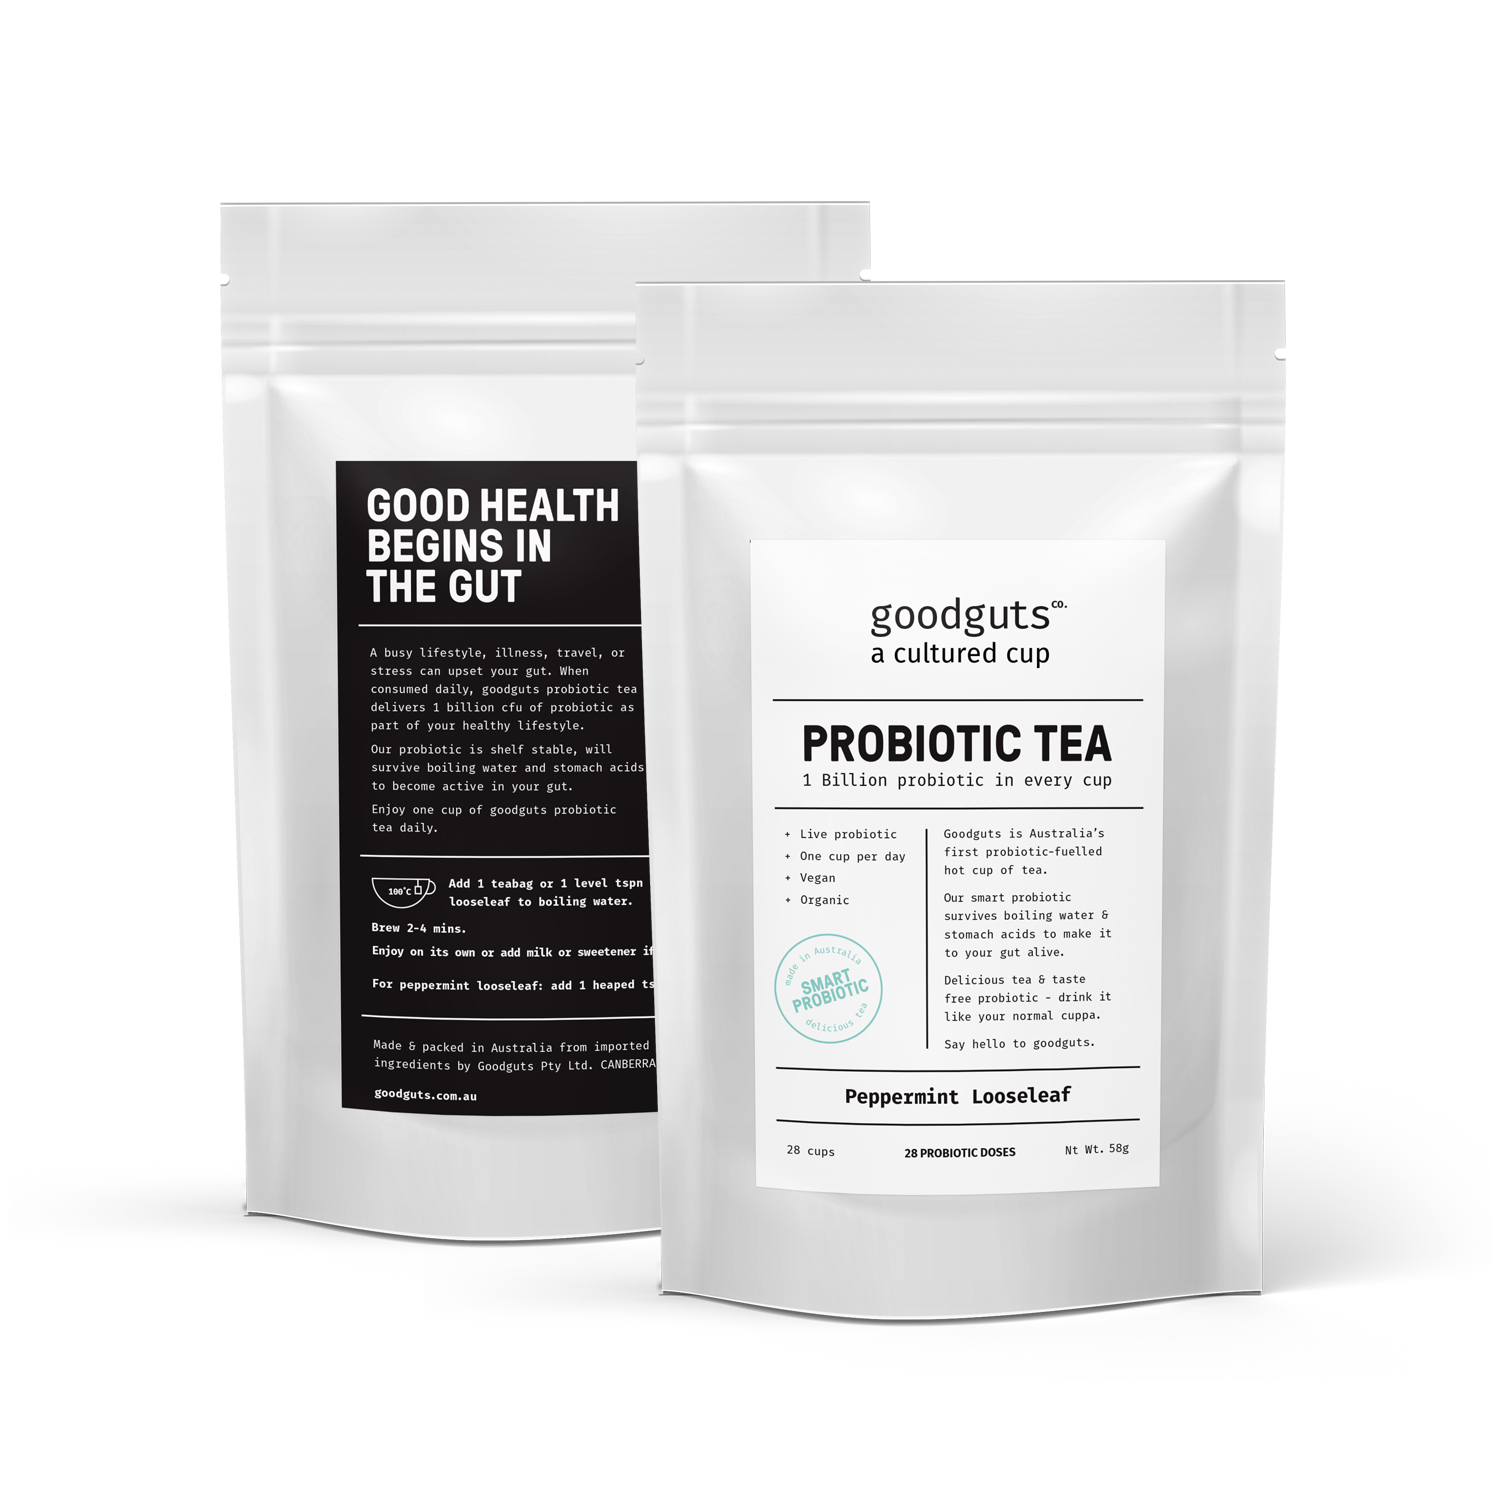 Goodguts Probiotic Looseleaf Peppermint Tea